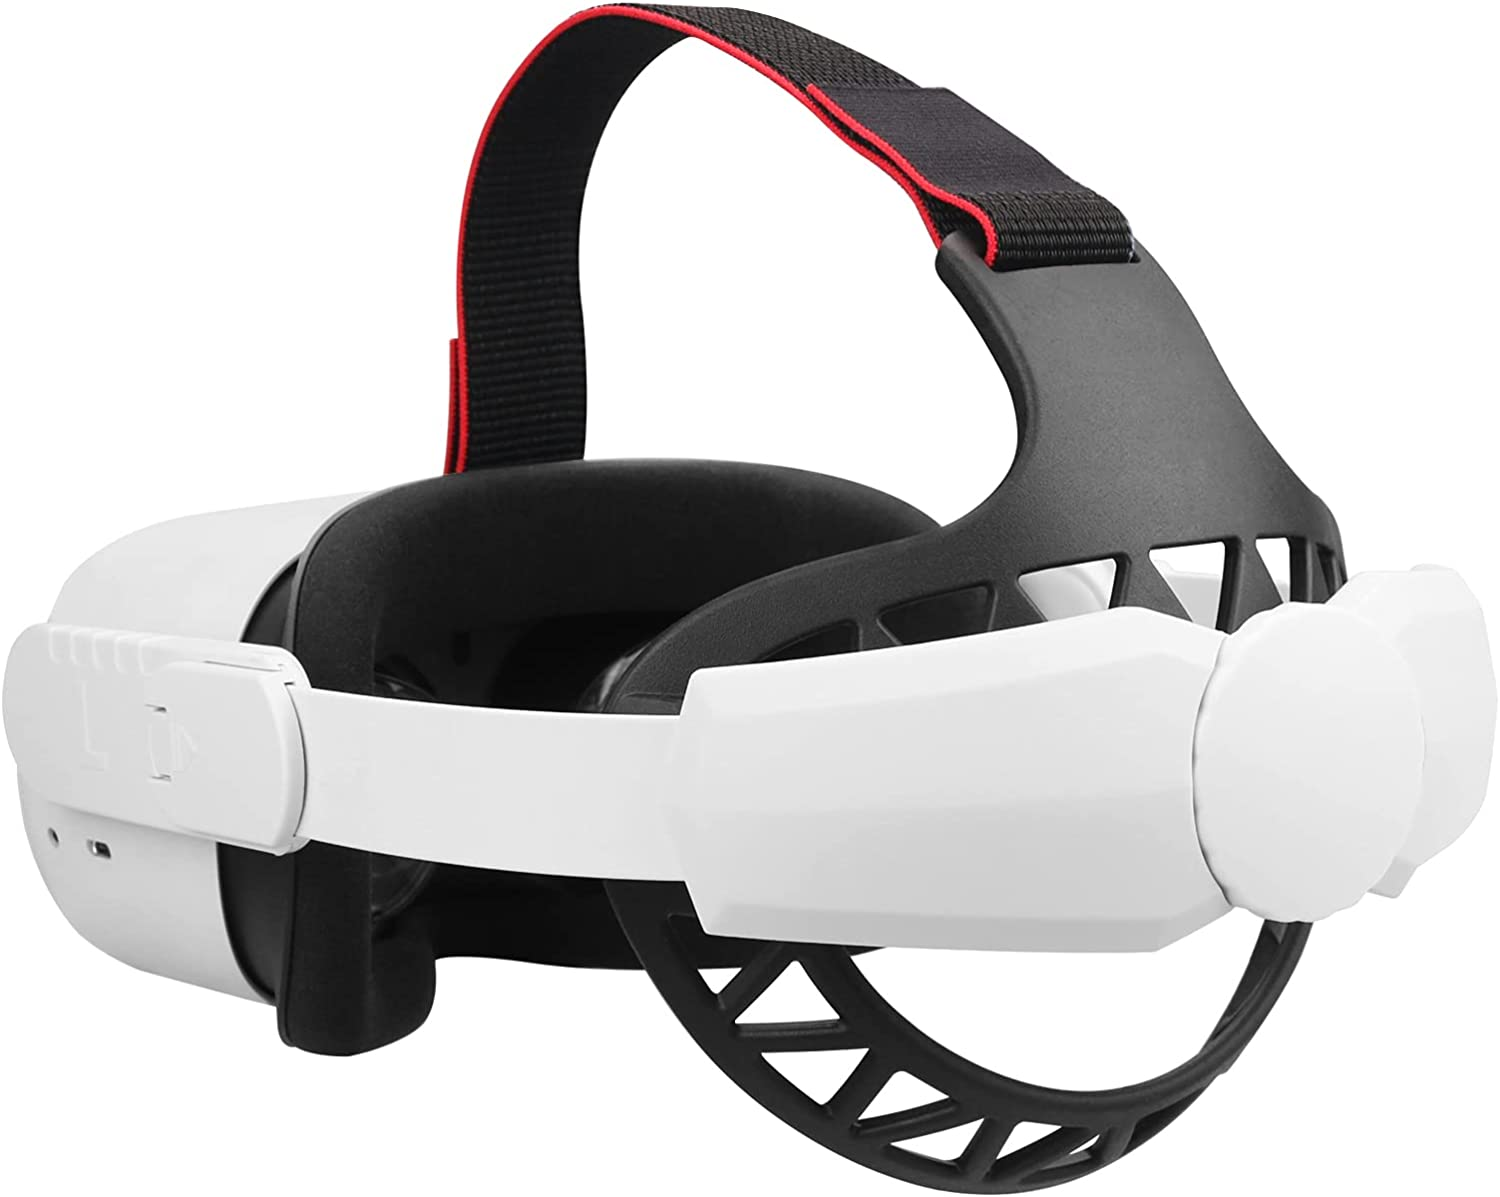 MASiKEN Soft Head Strap for Oculus Quest 2 with Head Back Pad, Portable Replacement Elite Strap, Reduce Face Pressure Comfortable Touch, Better Fit Kids Head